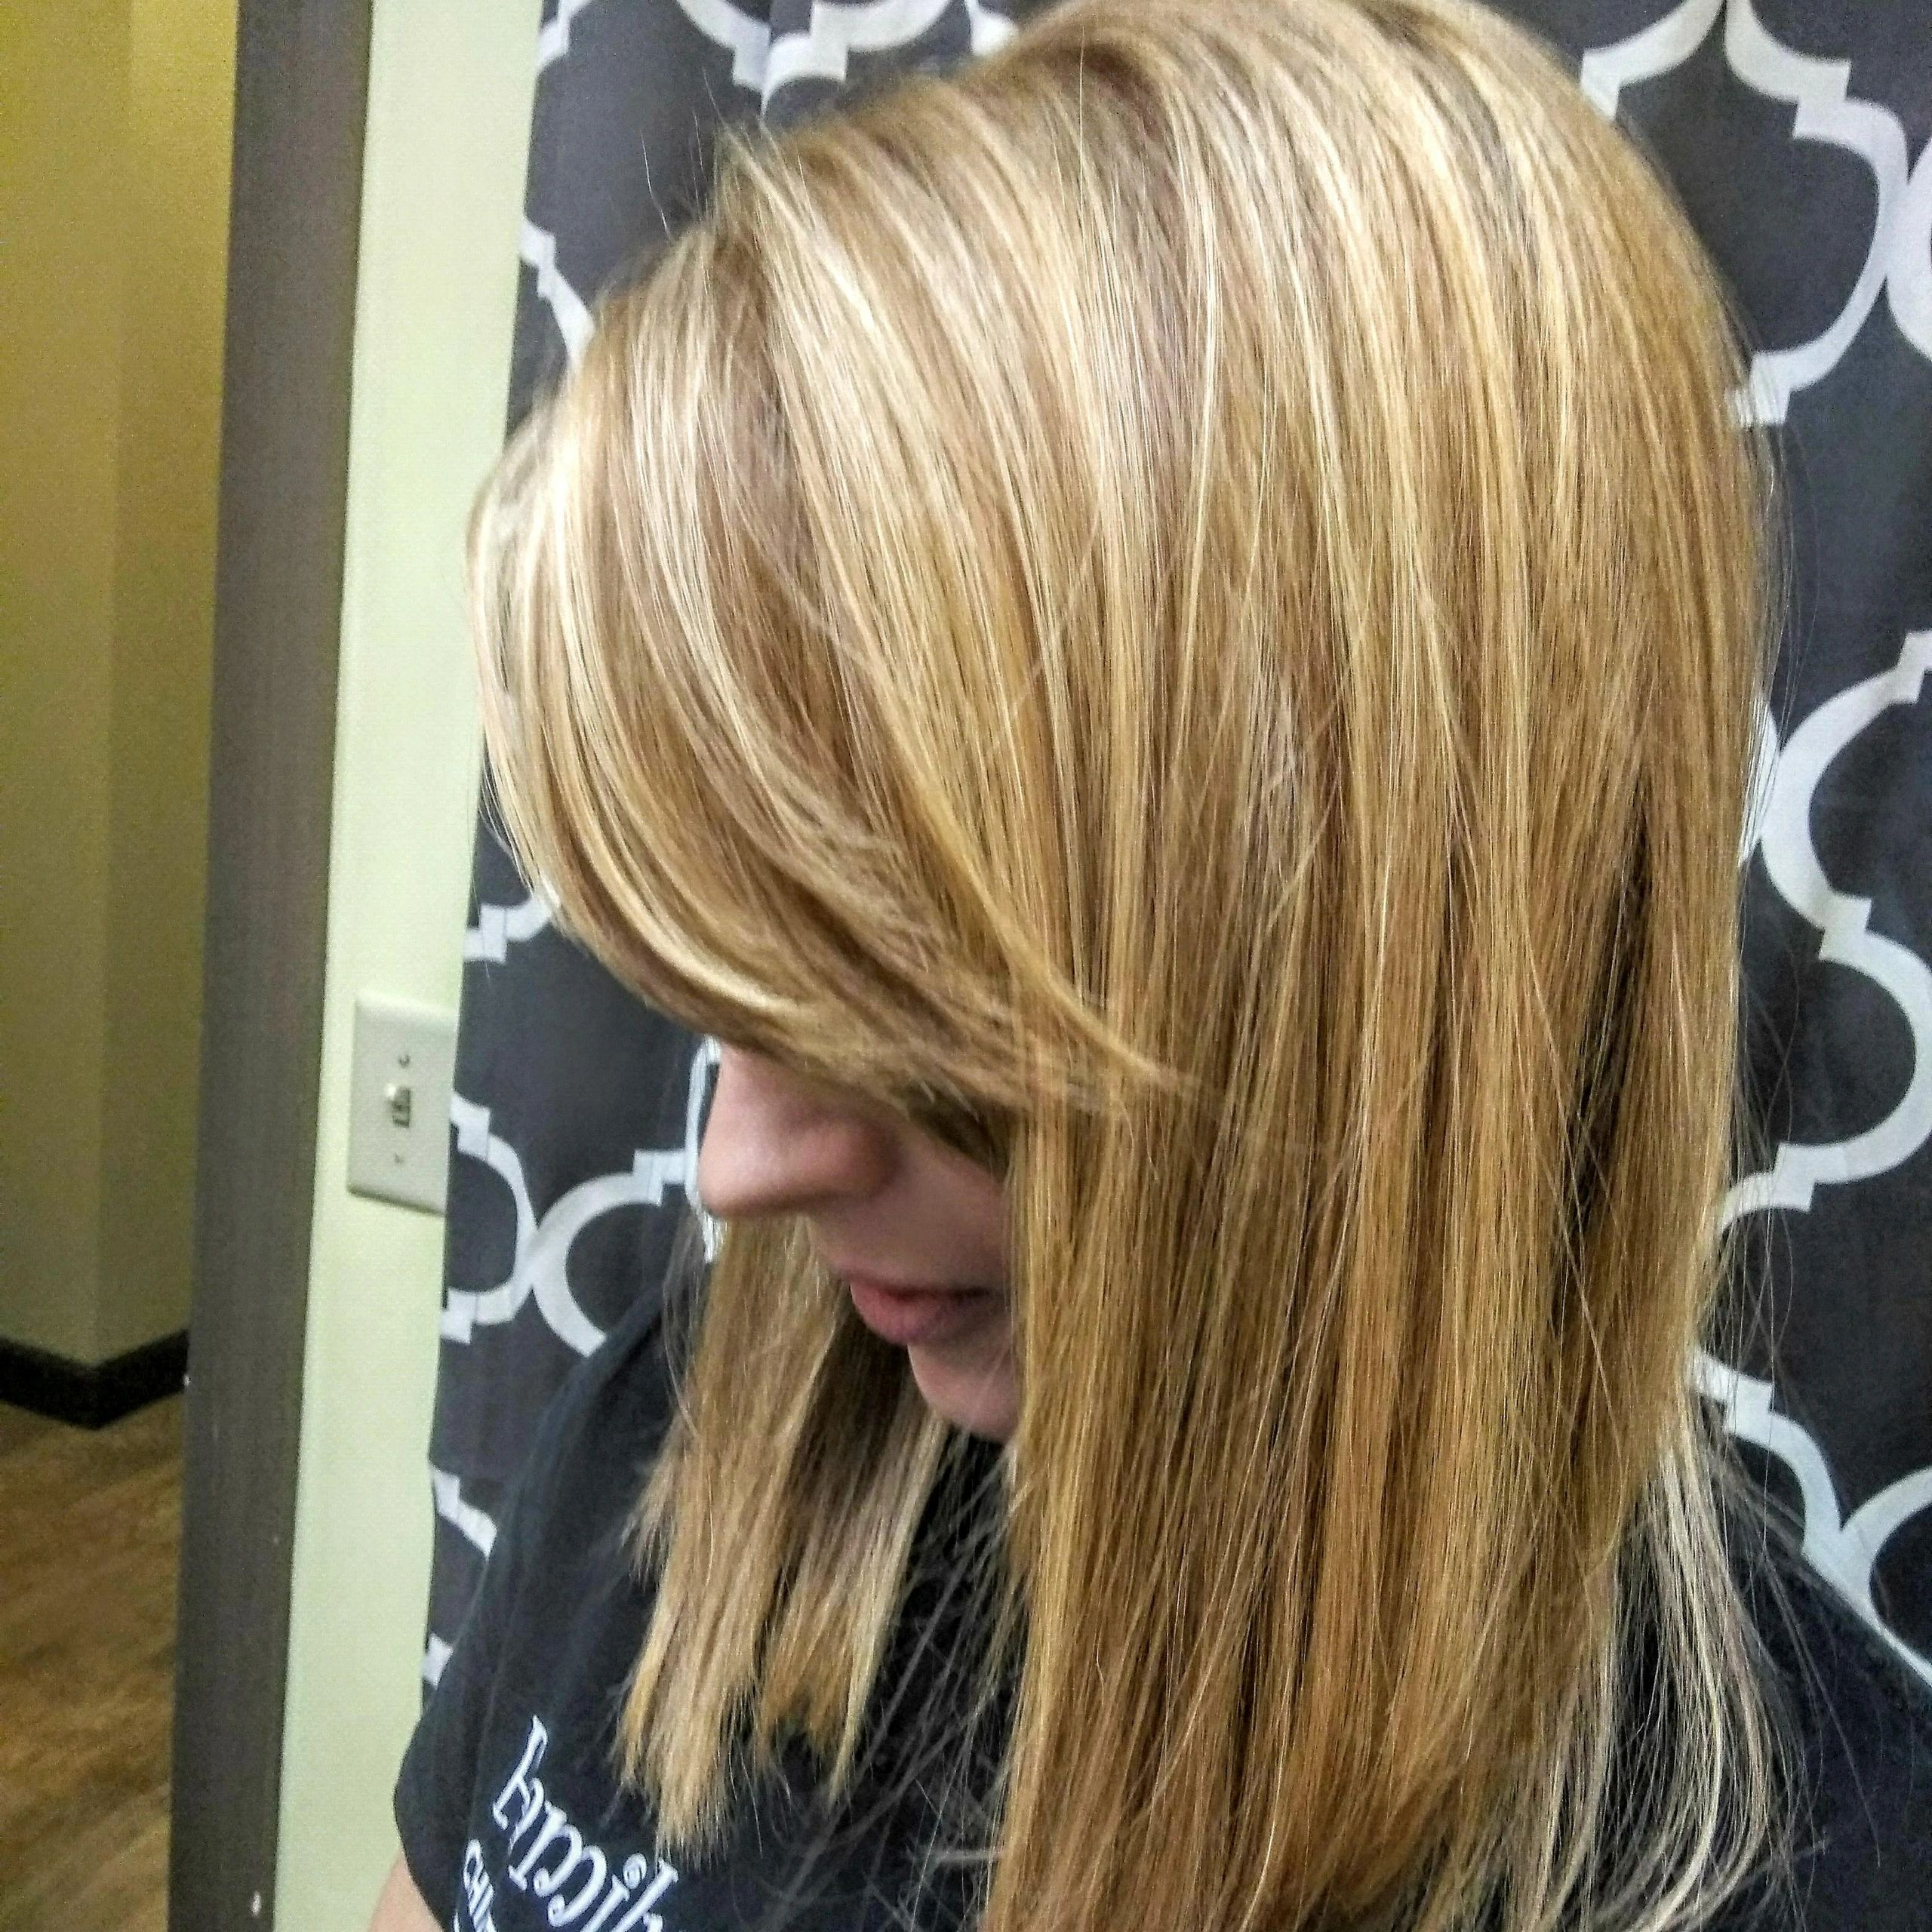 BEAUTIFUL LONG LAYERED CUT WITH BANGS